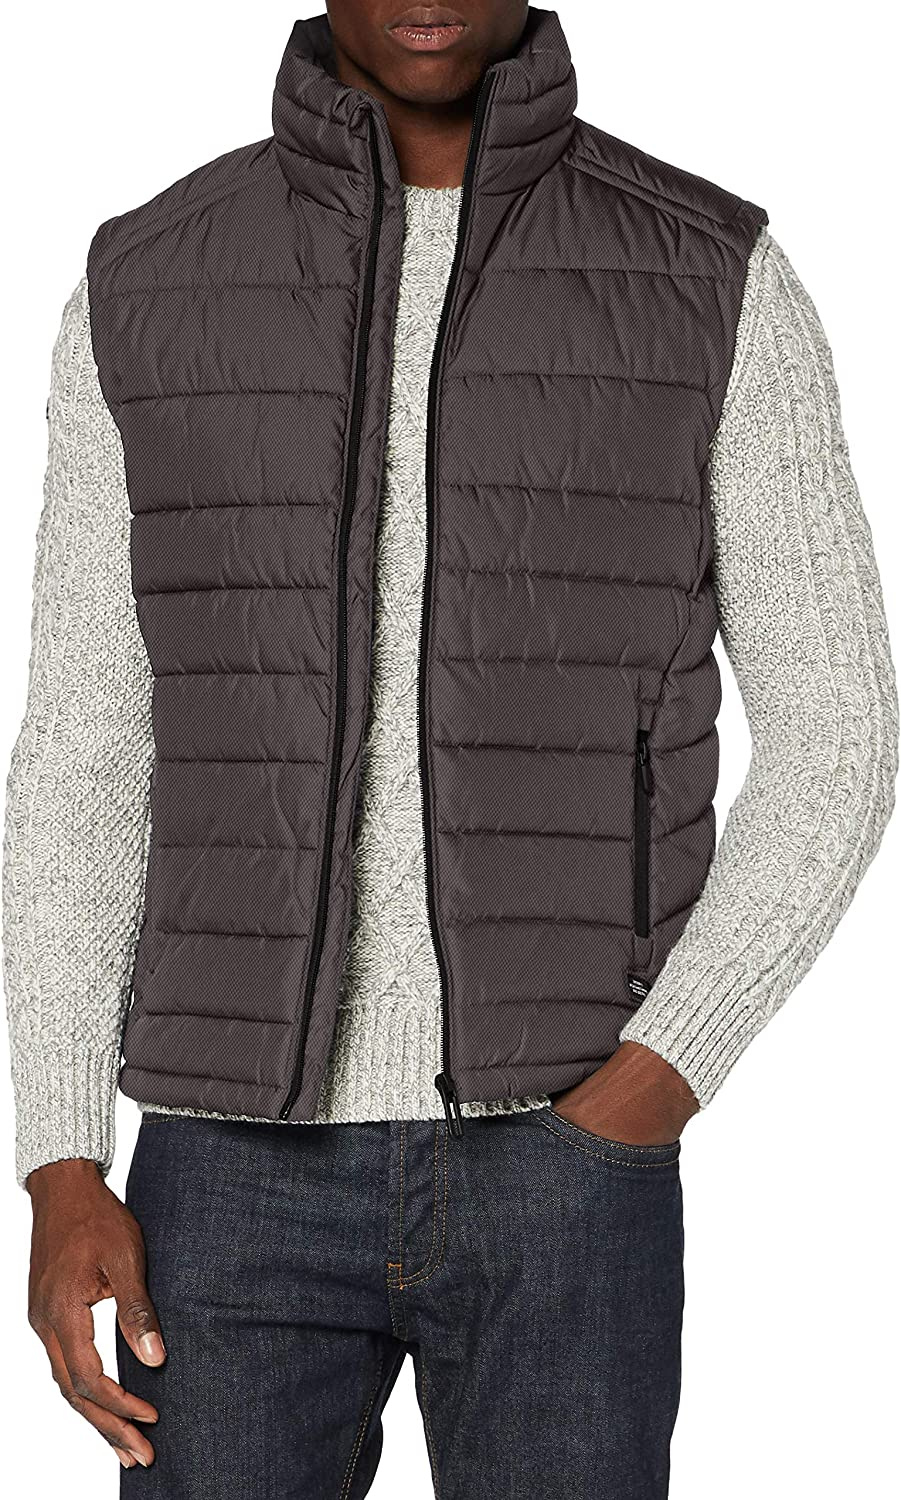 Superdry Fuji Gilet Free Max 56% OFF shipping on posting reviews